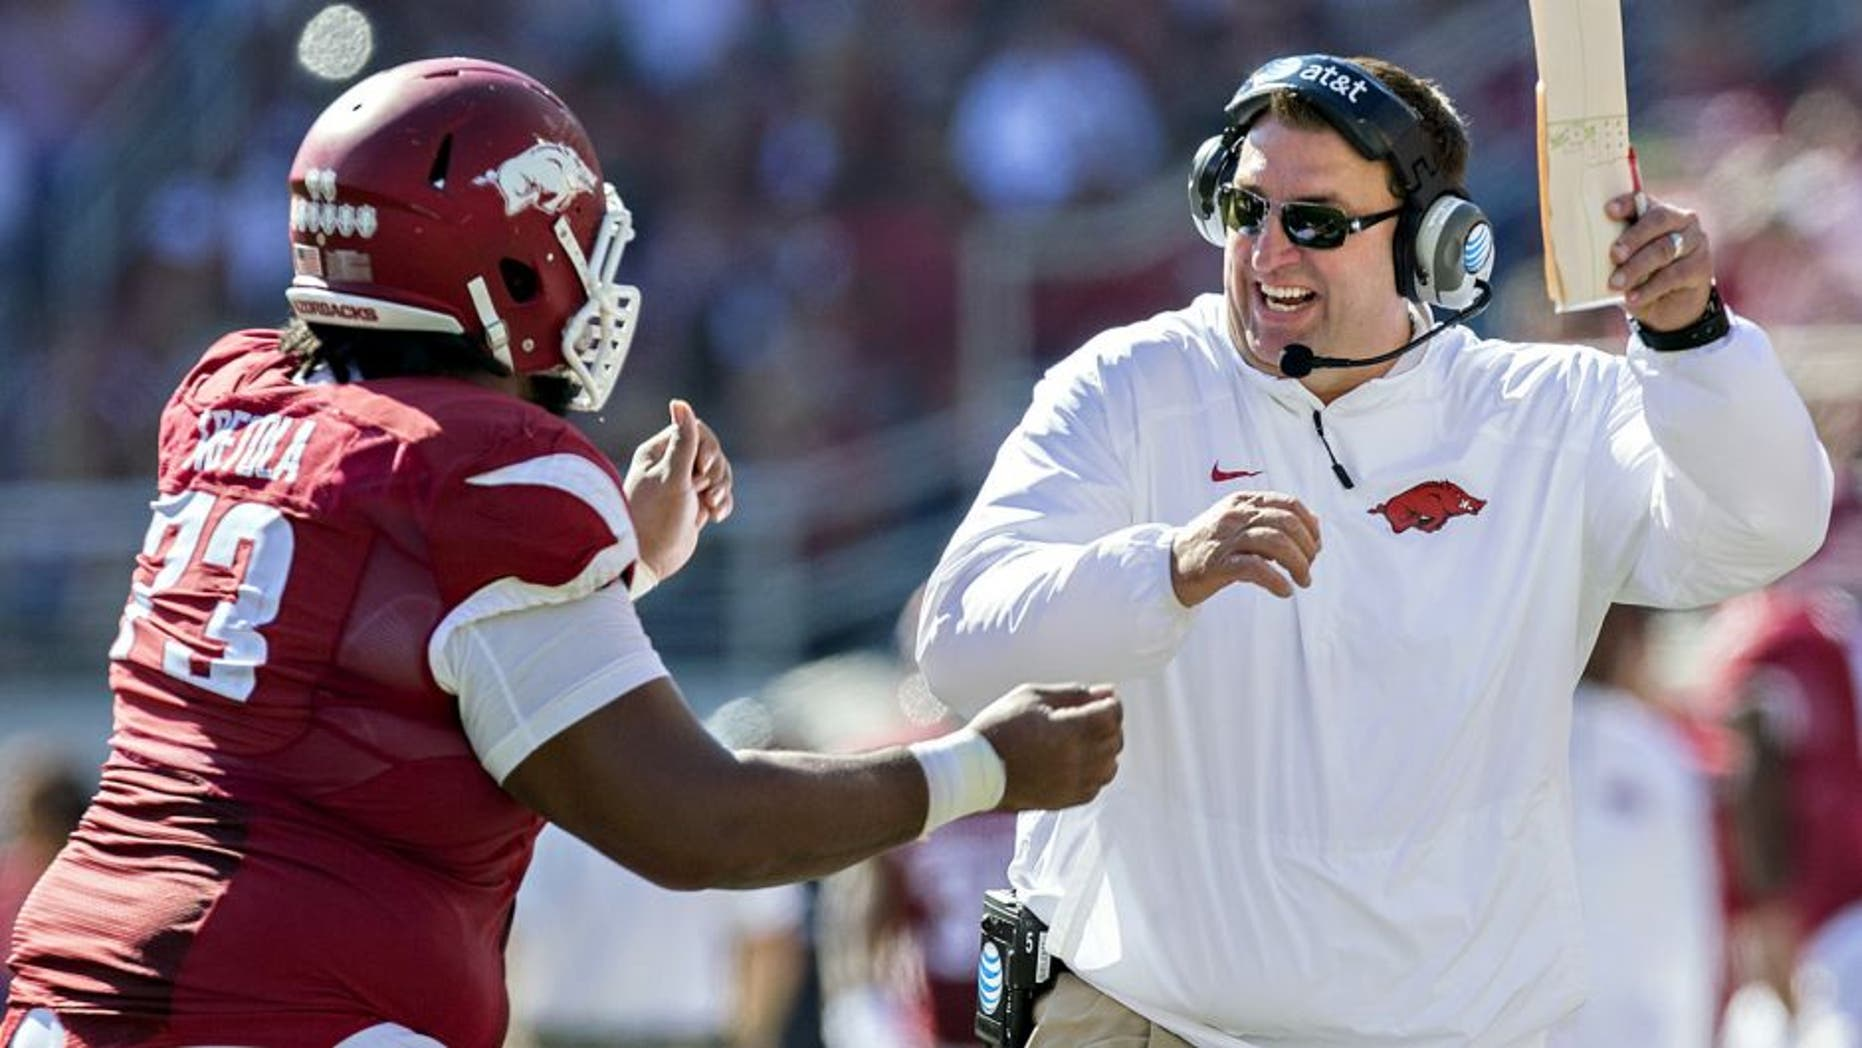 FAYETTEVILLE, AR - OCTOBER 25: Head Coach Bret Bielema and Sebastian Tretola #73 of the Arkansas Razorbacks celebrate after Tretola throws a touchdown pass against the UAB Blazers at Razorback Stadium on October 25, 2014 in Fayetteville, Arkansas. The Razorbacks defeated the Blazers 45-17. (Photo by Wesley Hitt/Getty Images)